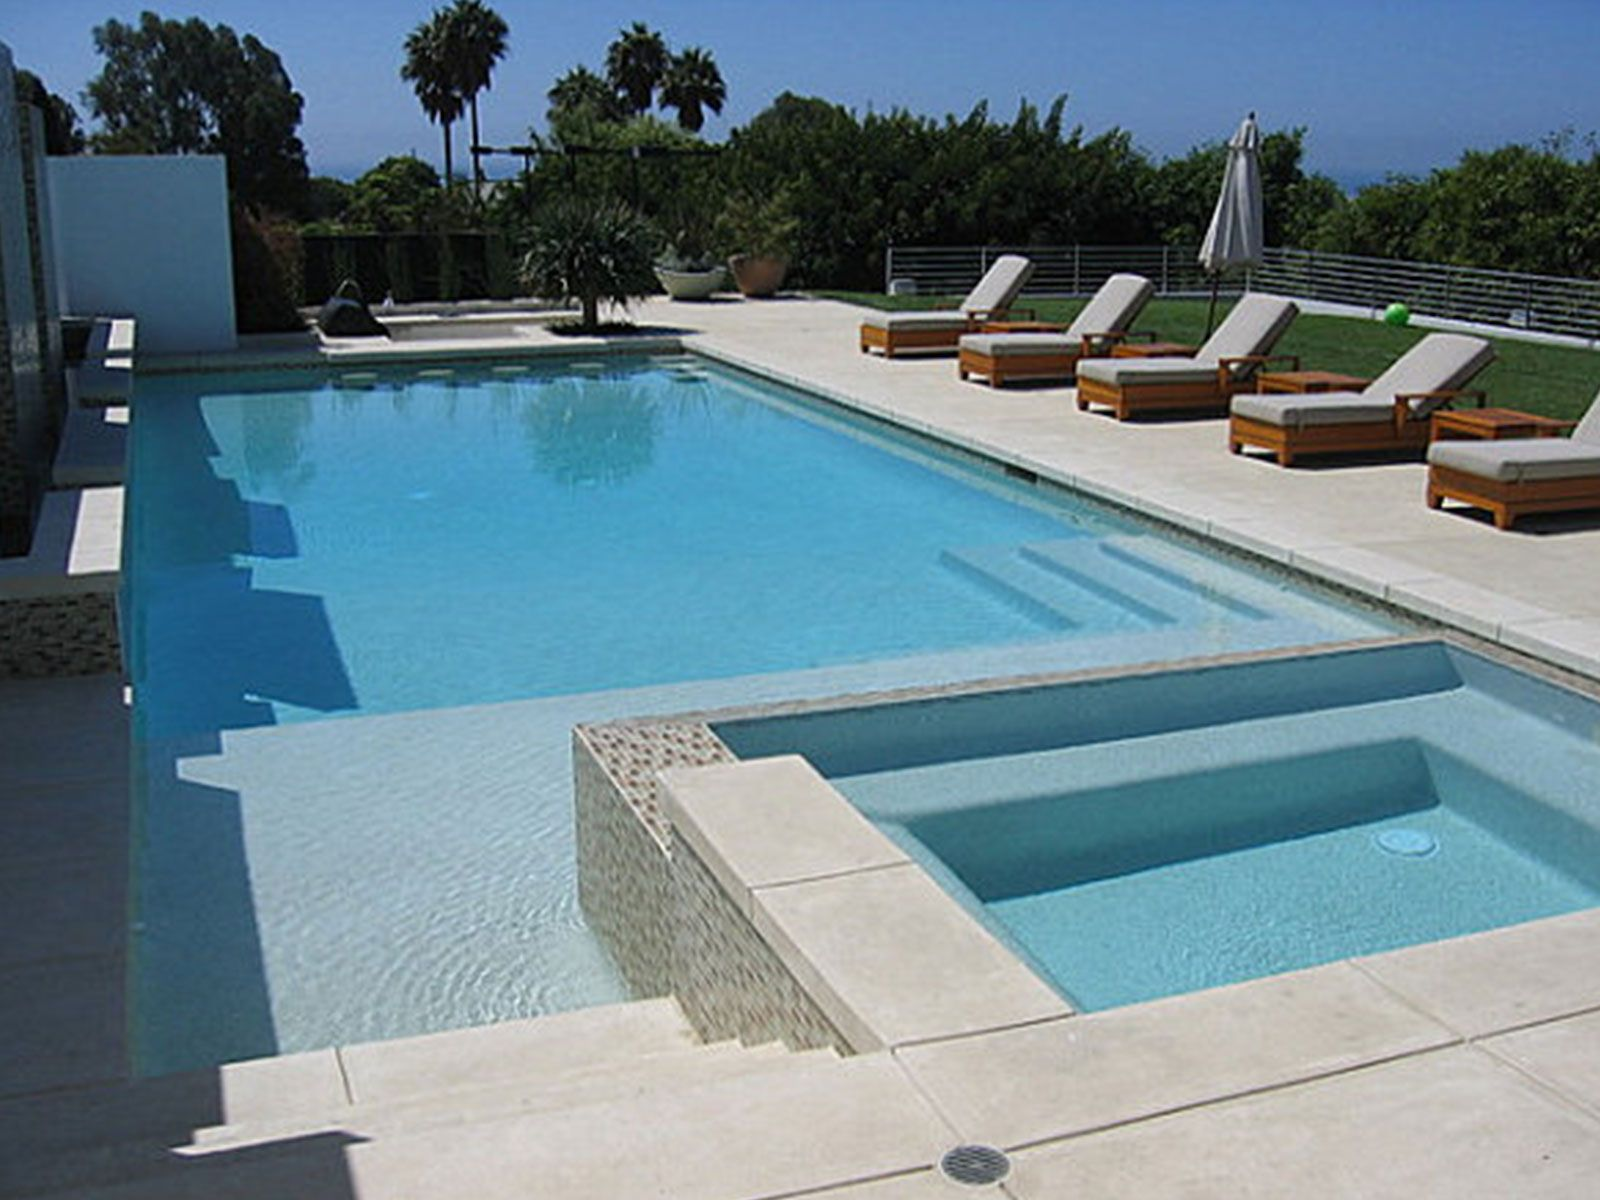 Backyard Pool Design Design Mesmerizing Design Review